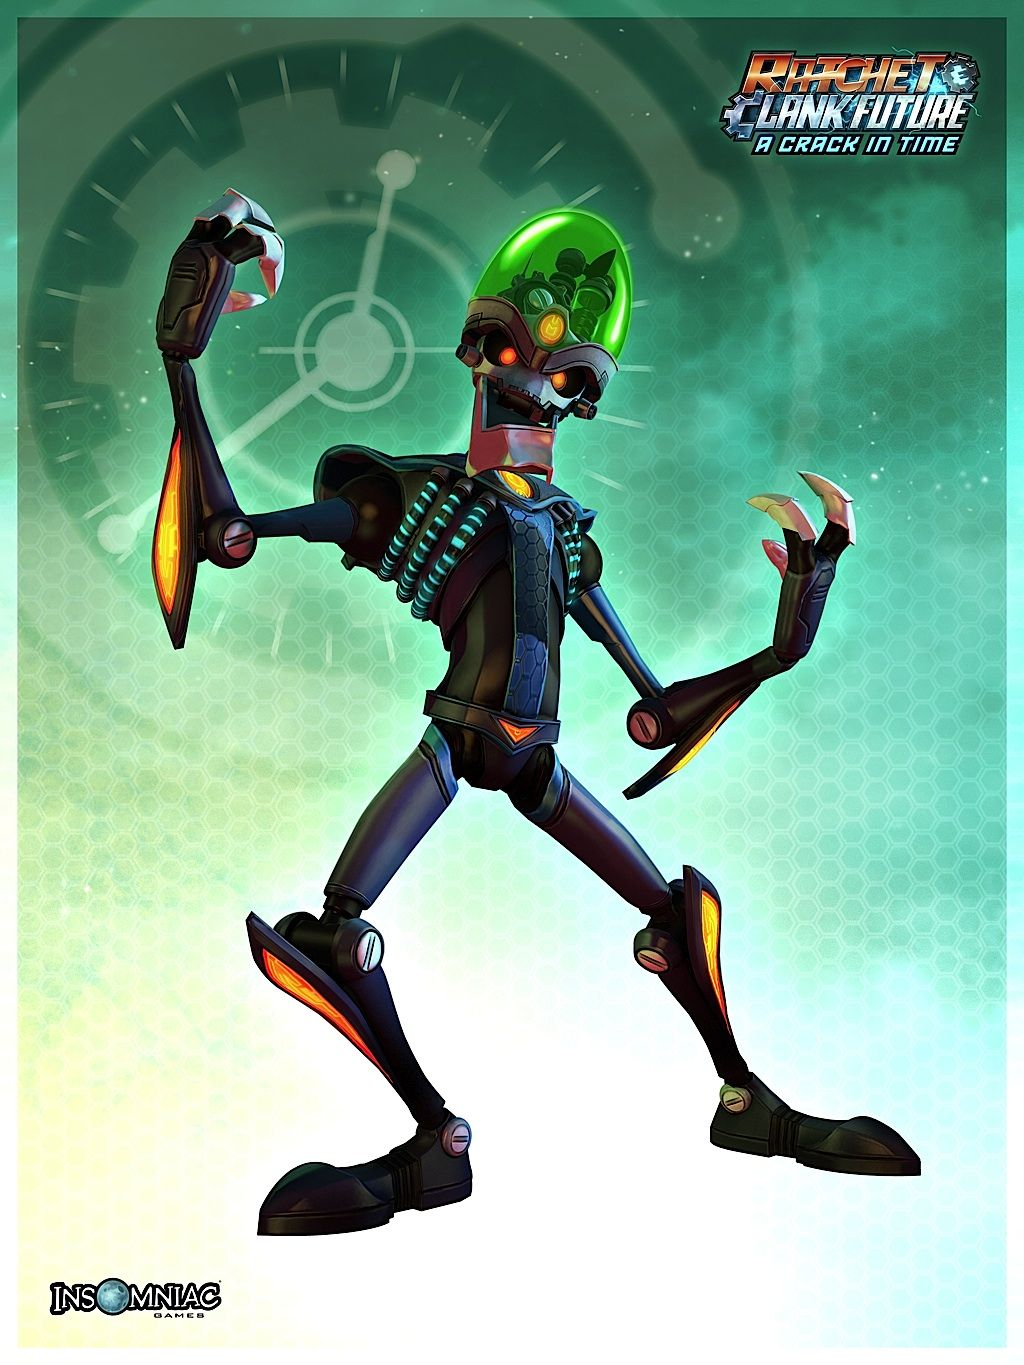 nefarious-ratchet-and-clank-crack-in-time-artwork  101936c02b